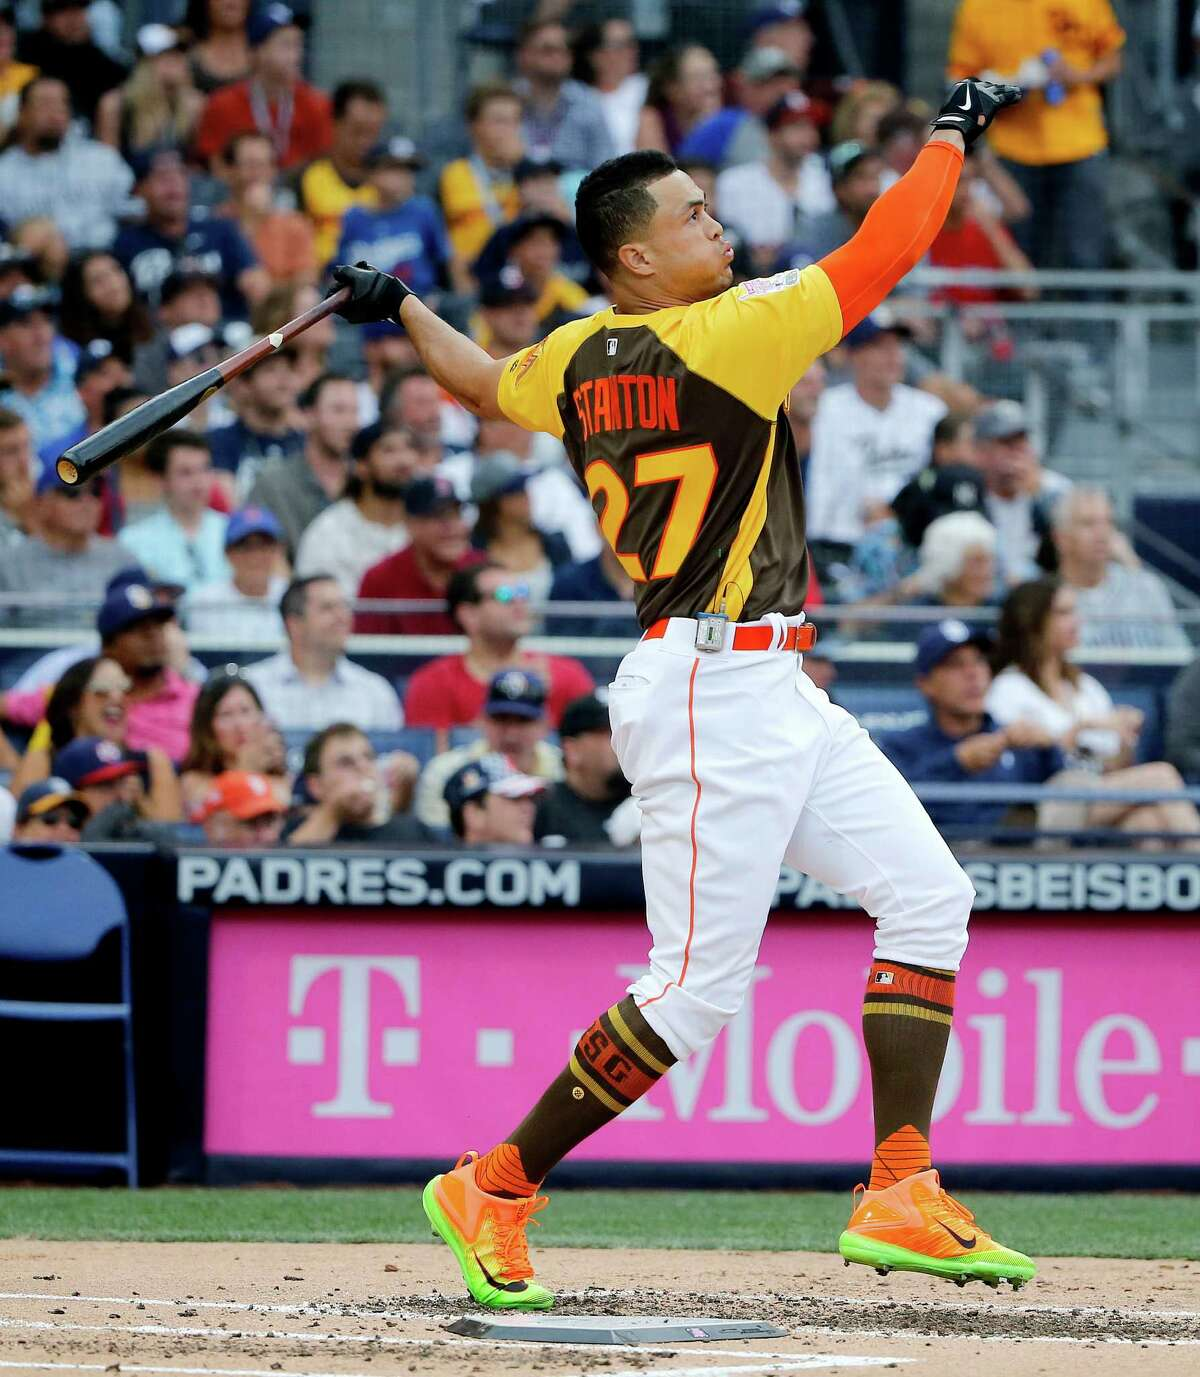 Marlins slugger Giancarlo Stanton finished with a record 61 home runs on his way to winning the All-Star Home Run Derby on Monday night in San Diego.